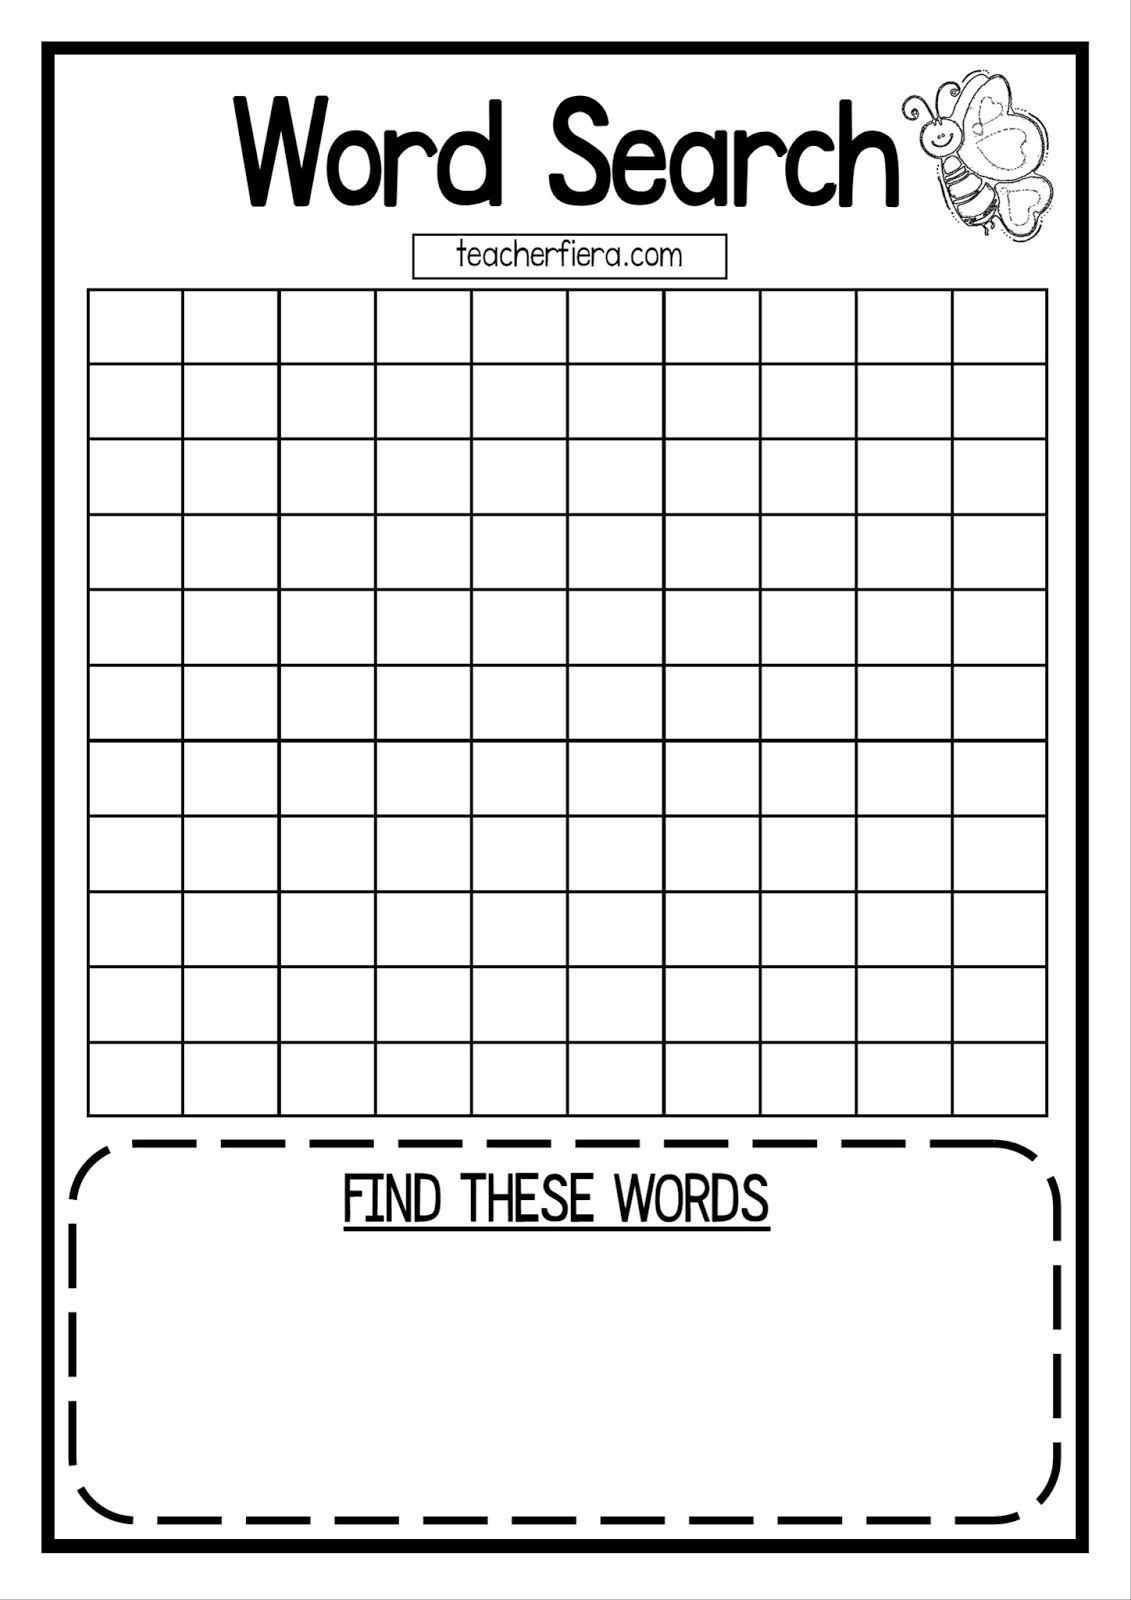 The Stunning 009 Printable Word Free Blank Search Template Wondrous Throughout Word Sleuth Template Digita Business Template Templates Printable Free Word Find Make a word search template